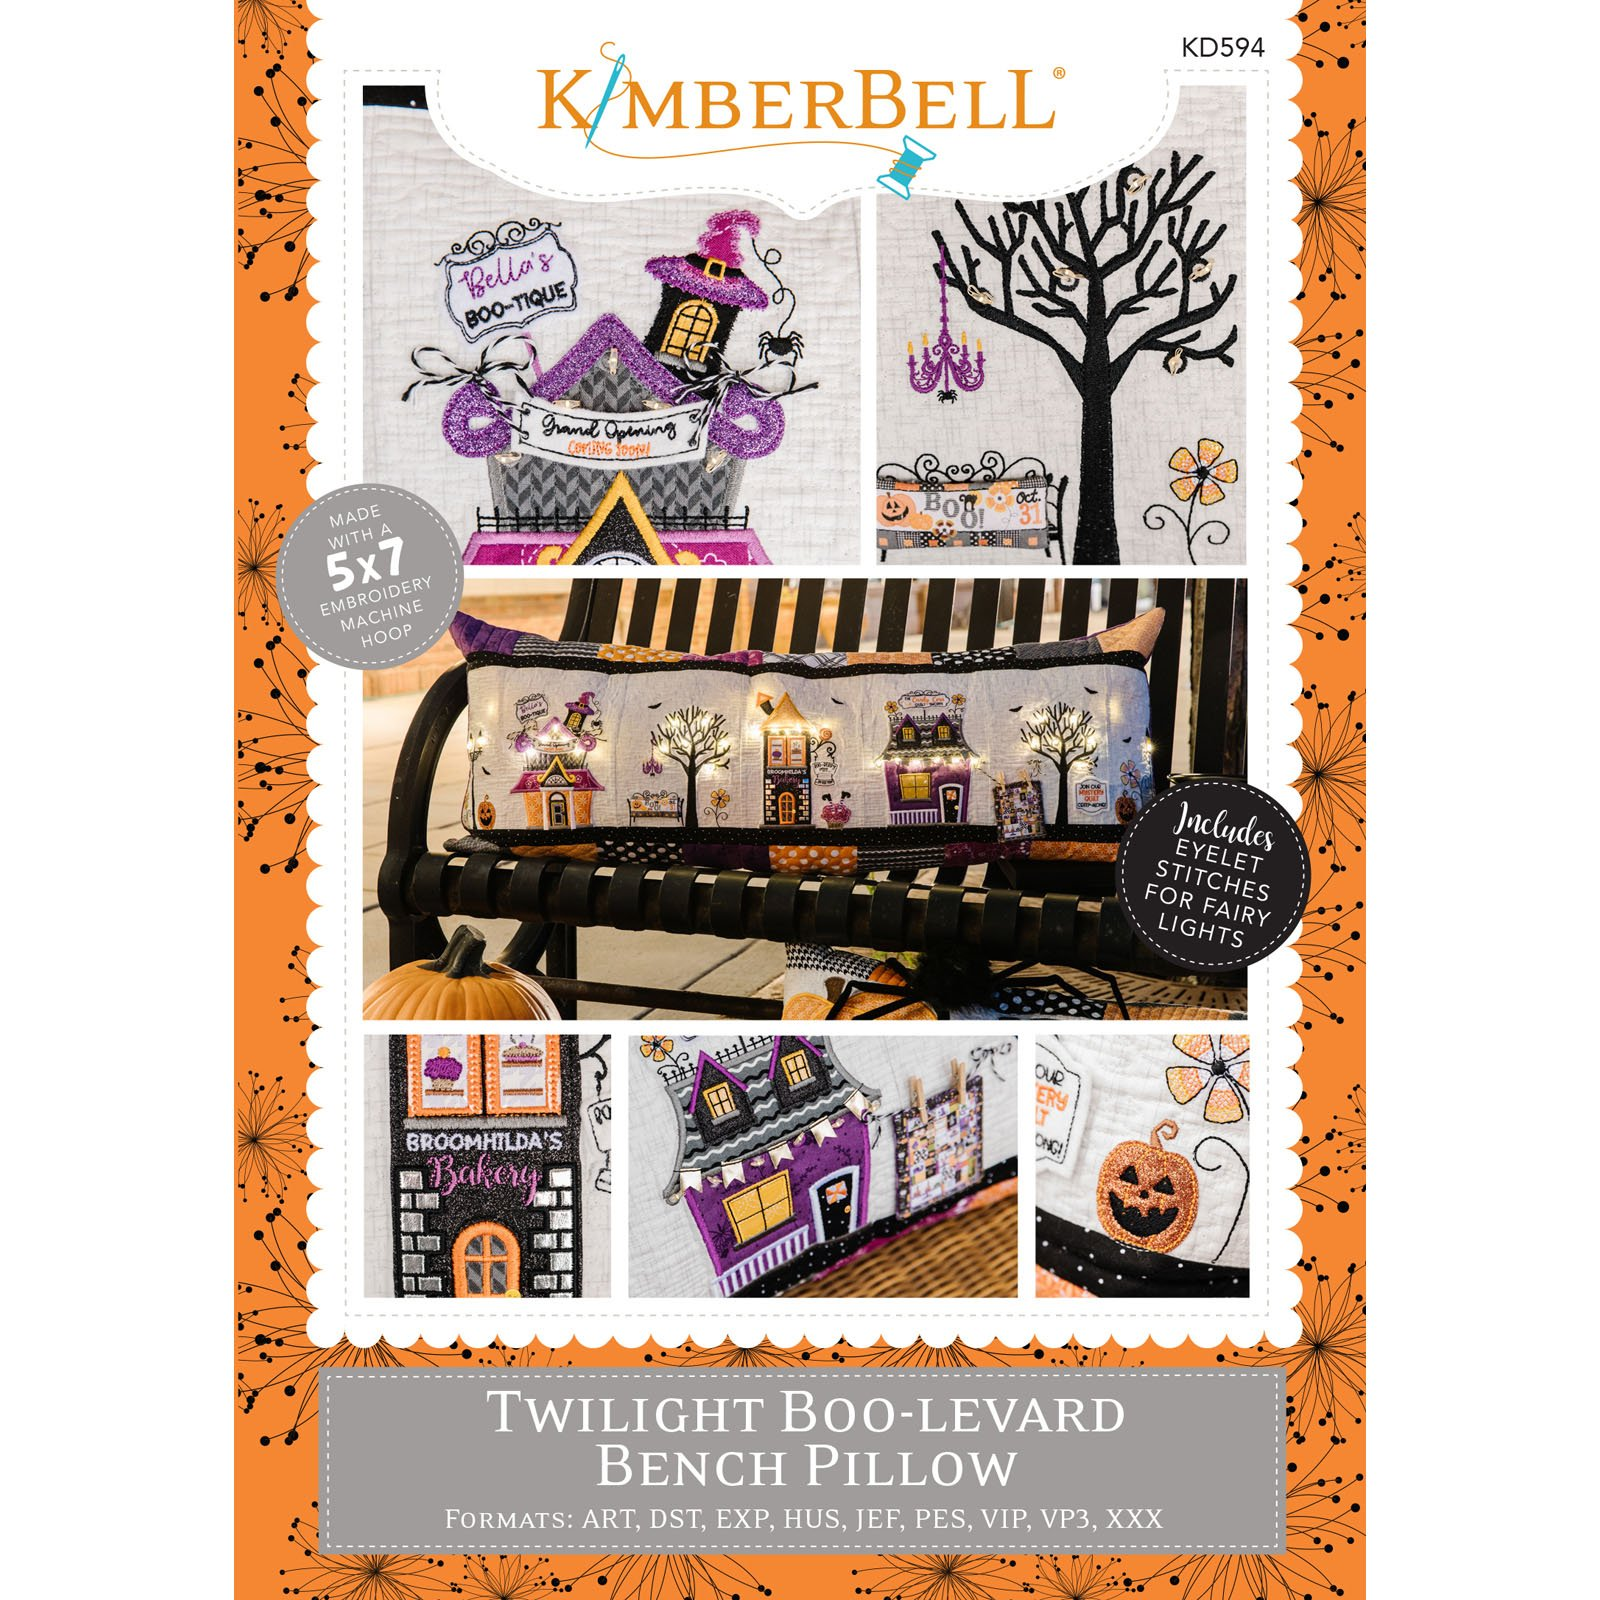 Kimberbell - Twilight Boo-levard Bench Pillow - Machine Embroidery